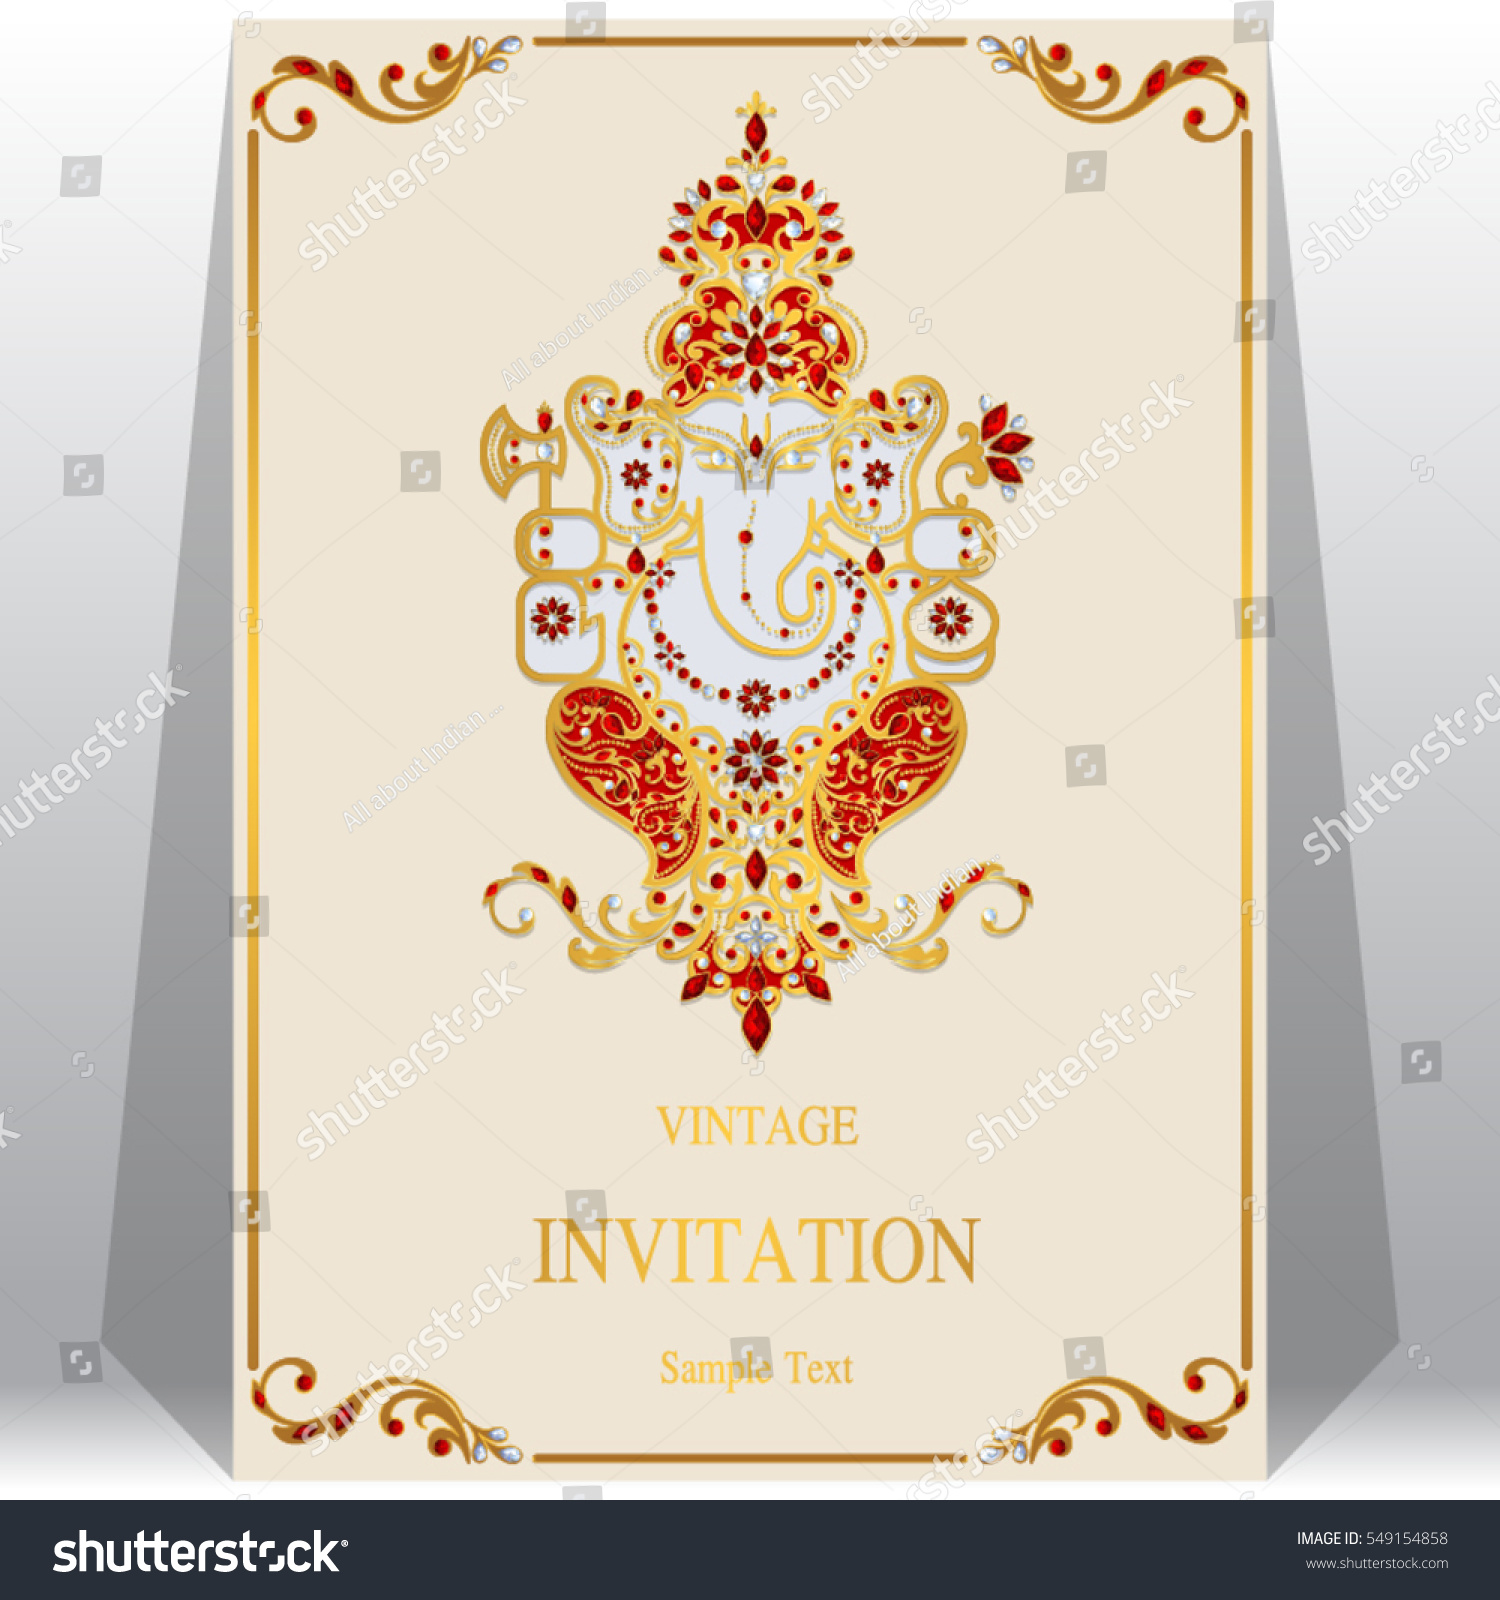 indian wedding invitation card templates gold stock vector 549154858 shutterstock. Black Bedroom Furniture Sets. Home Design Ideas